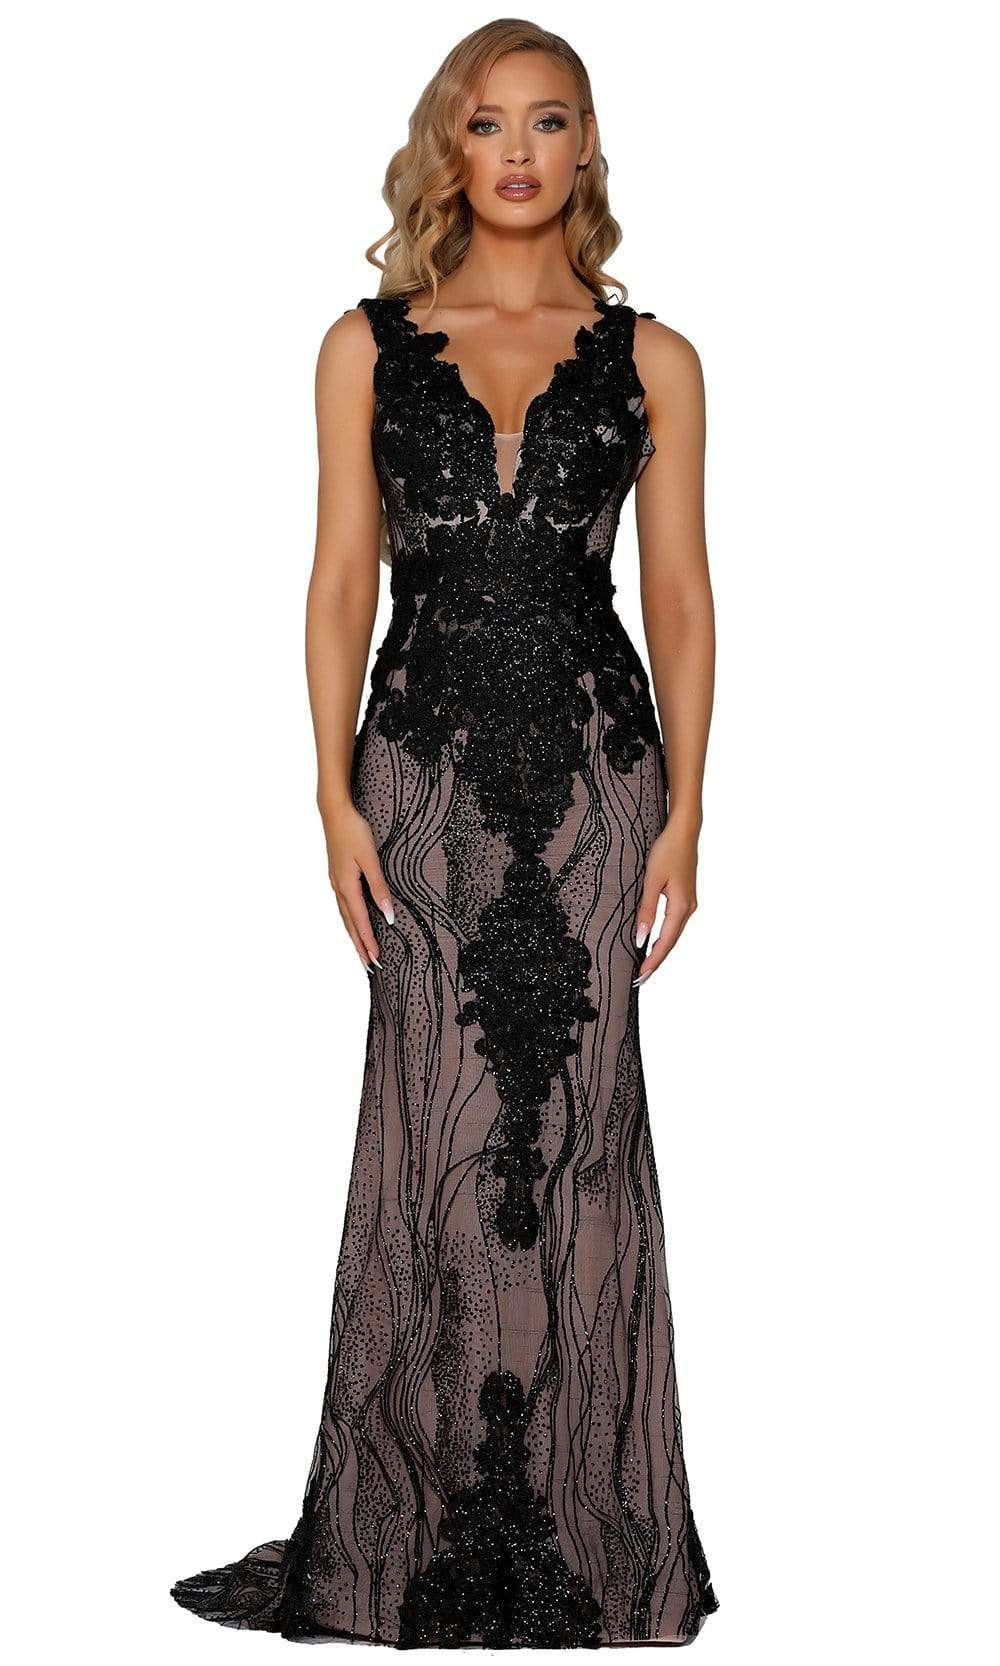 Portia and Scarlett - PS6082 Glitter Lace Appliqued Evening Gown from Portia and Scarlett